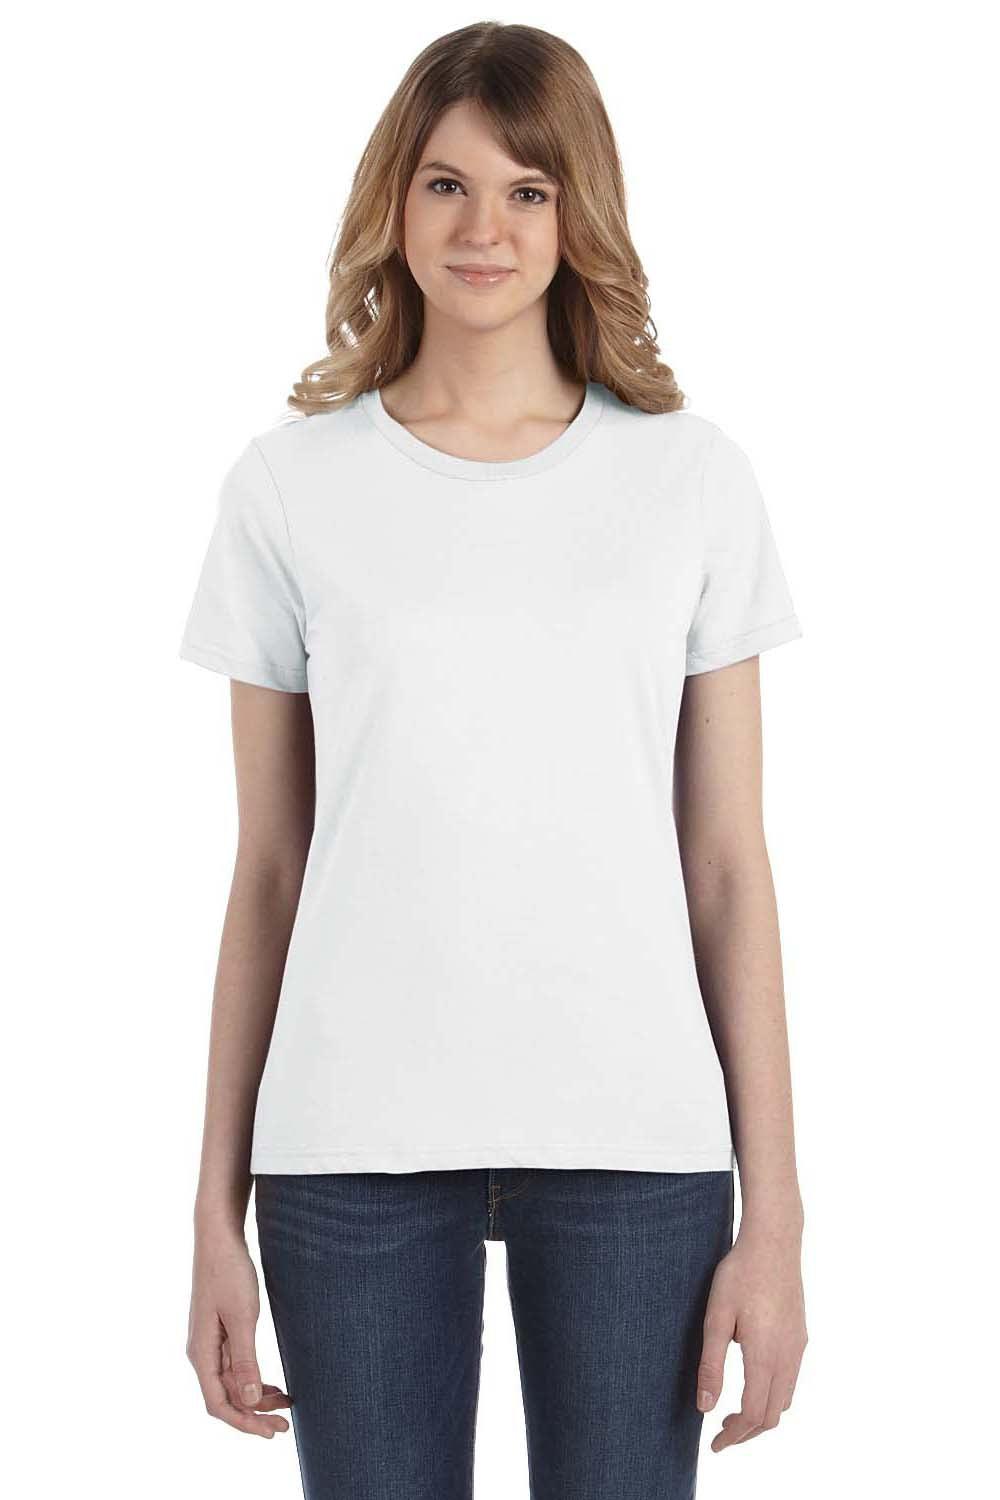 Anvil 880 Womens Short Sleeve Crewneck T-Shirt White Front